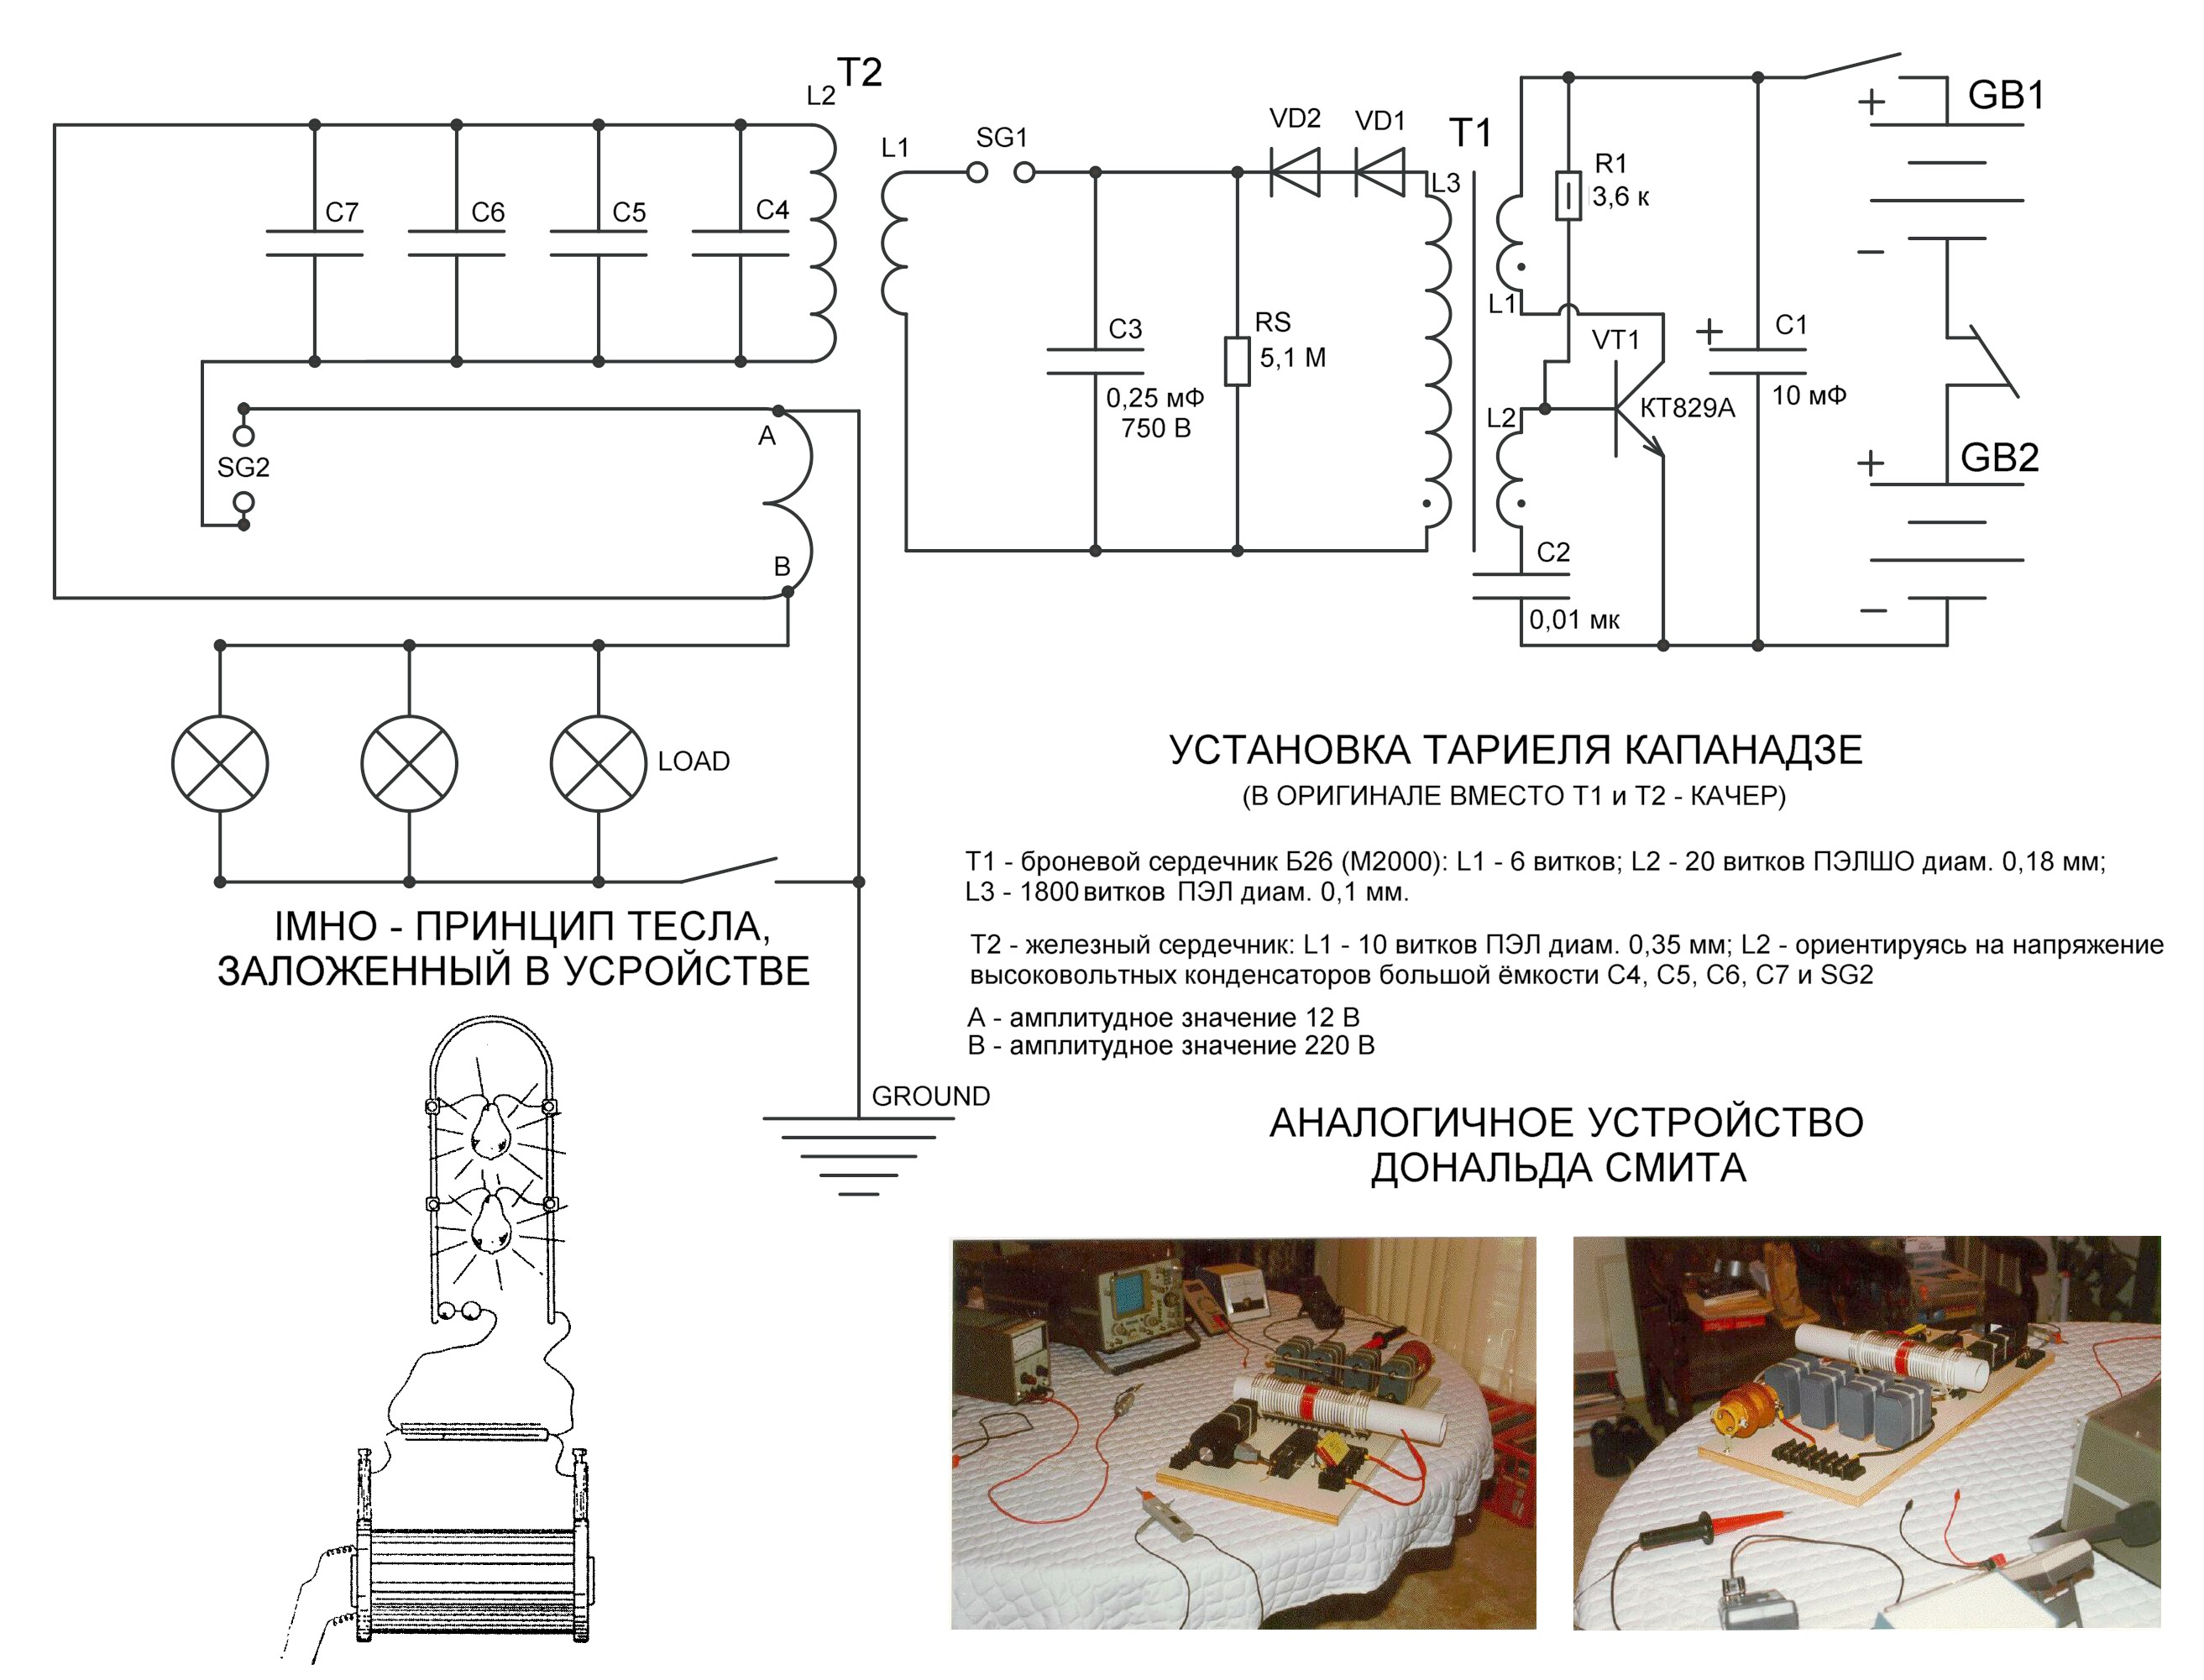 Outdoor Novelty String Lights Theme additionally Pentagonaliens05 furthermore Tesla coils intro besides Pyro Teslas Mag ic Generator Diagram together with Us Patent 555190 Alternating Motor. on tesla coil plans